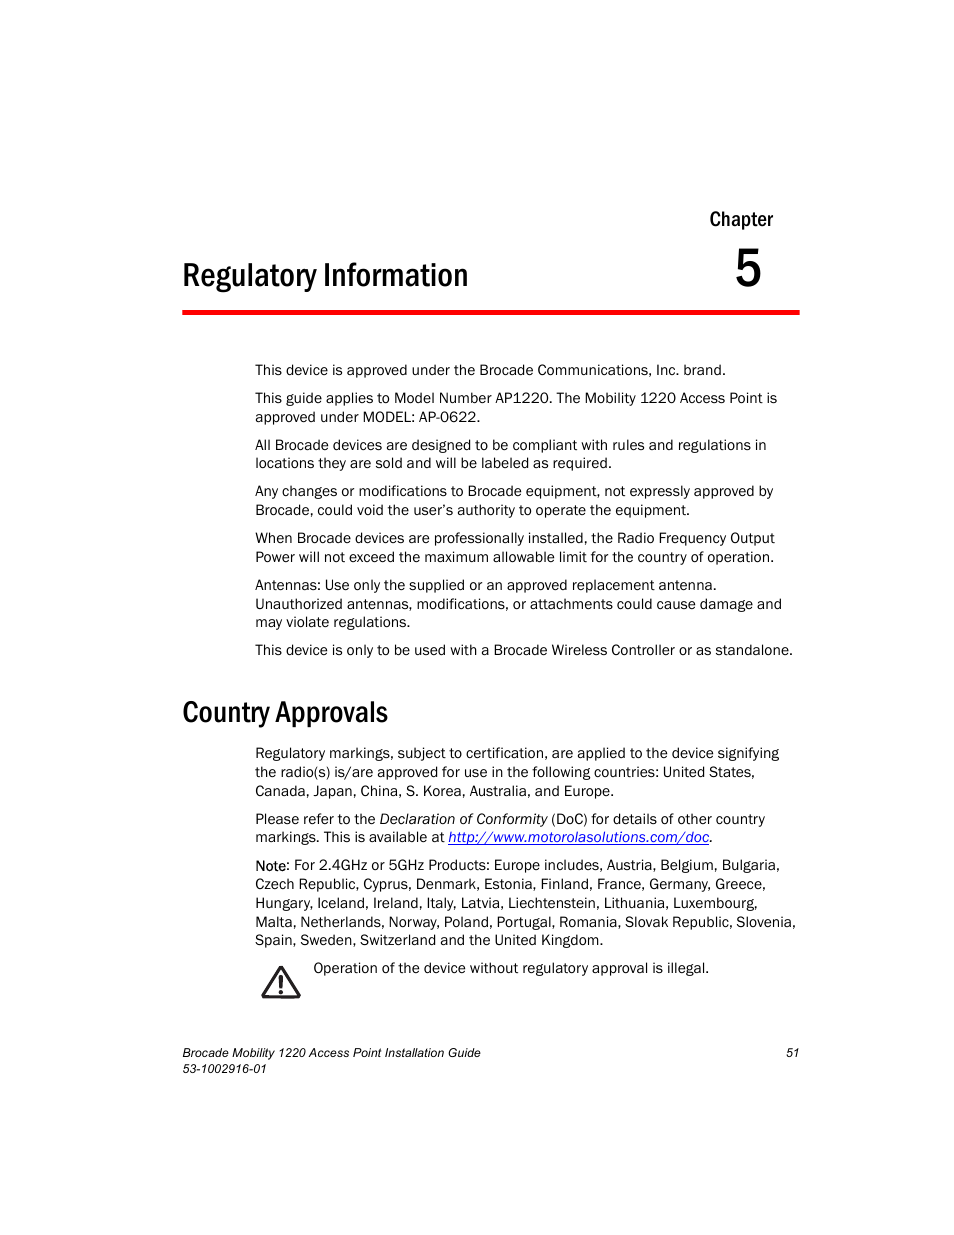 Regulatory Information Country Approvals Chapter 5 Brocade